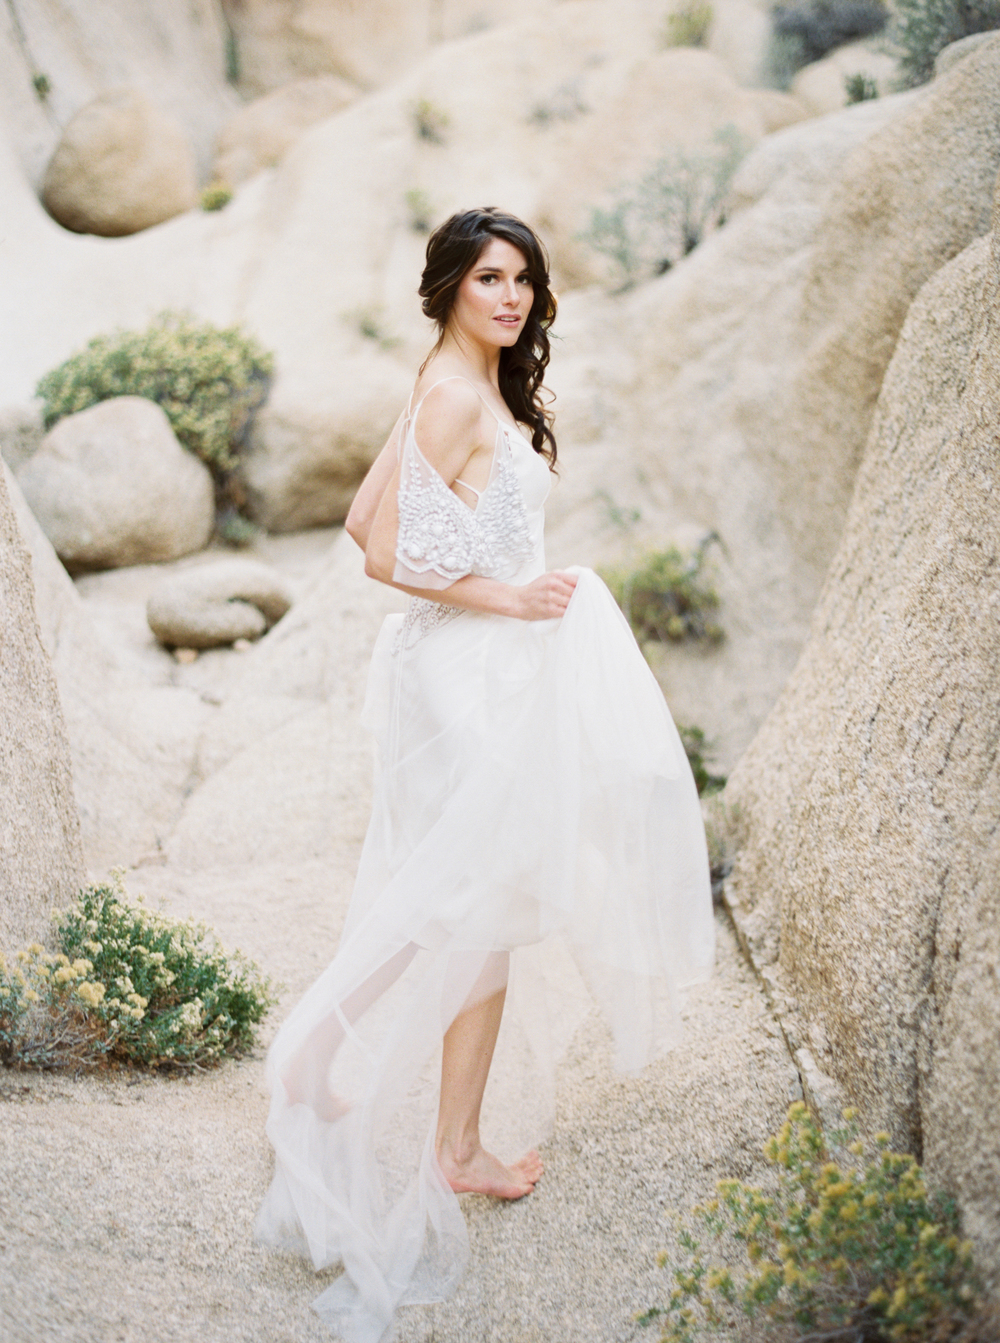 joshua_aull_contax645_fuji400h_joshua_tree_national_park_the_dress_theory_polky_nicole_black_calligraphy